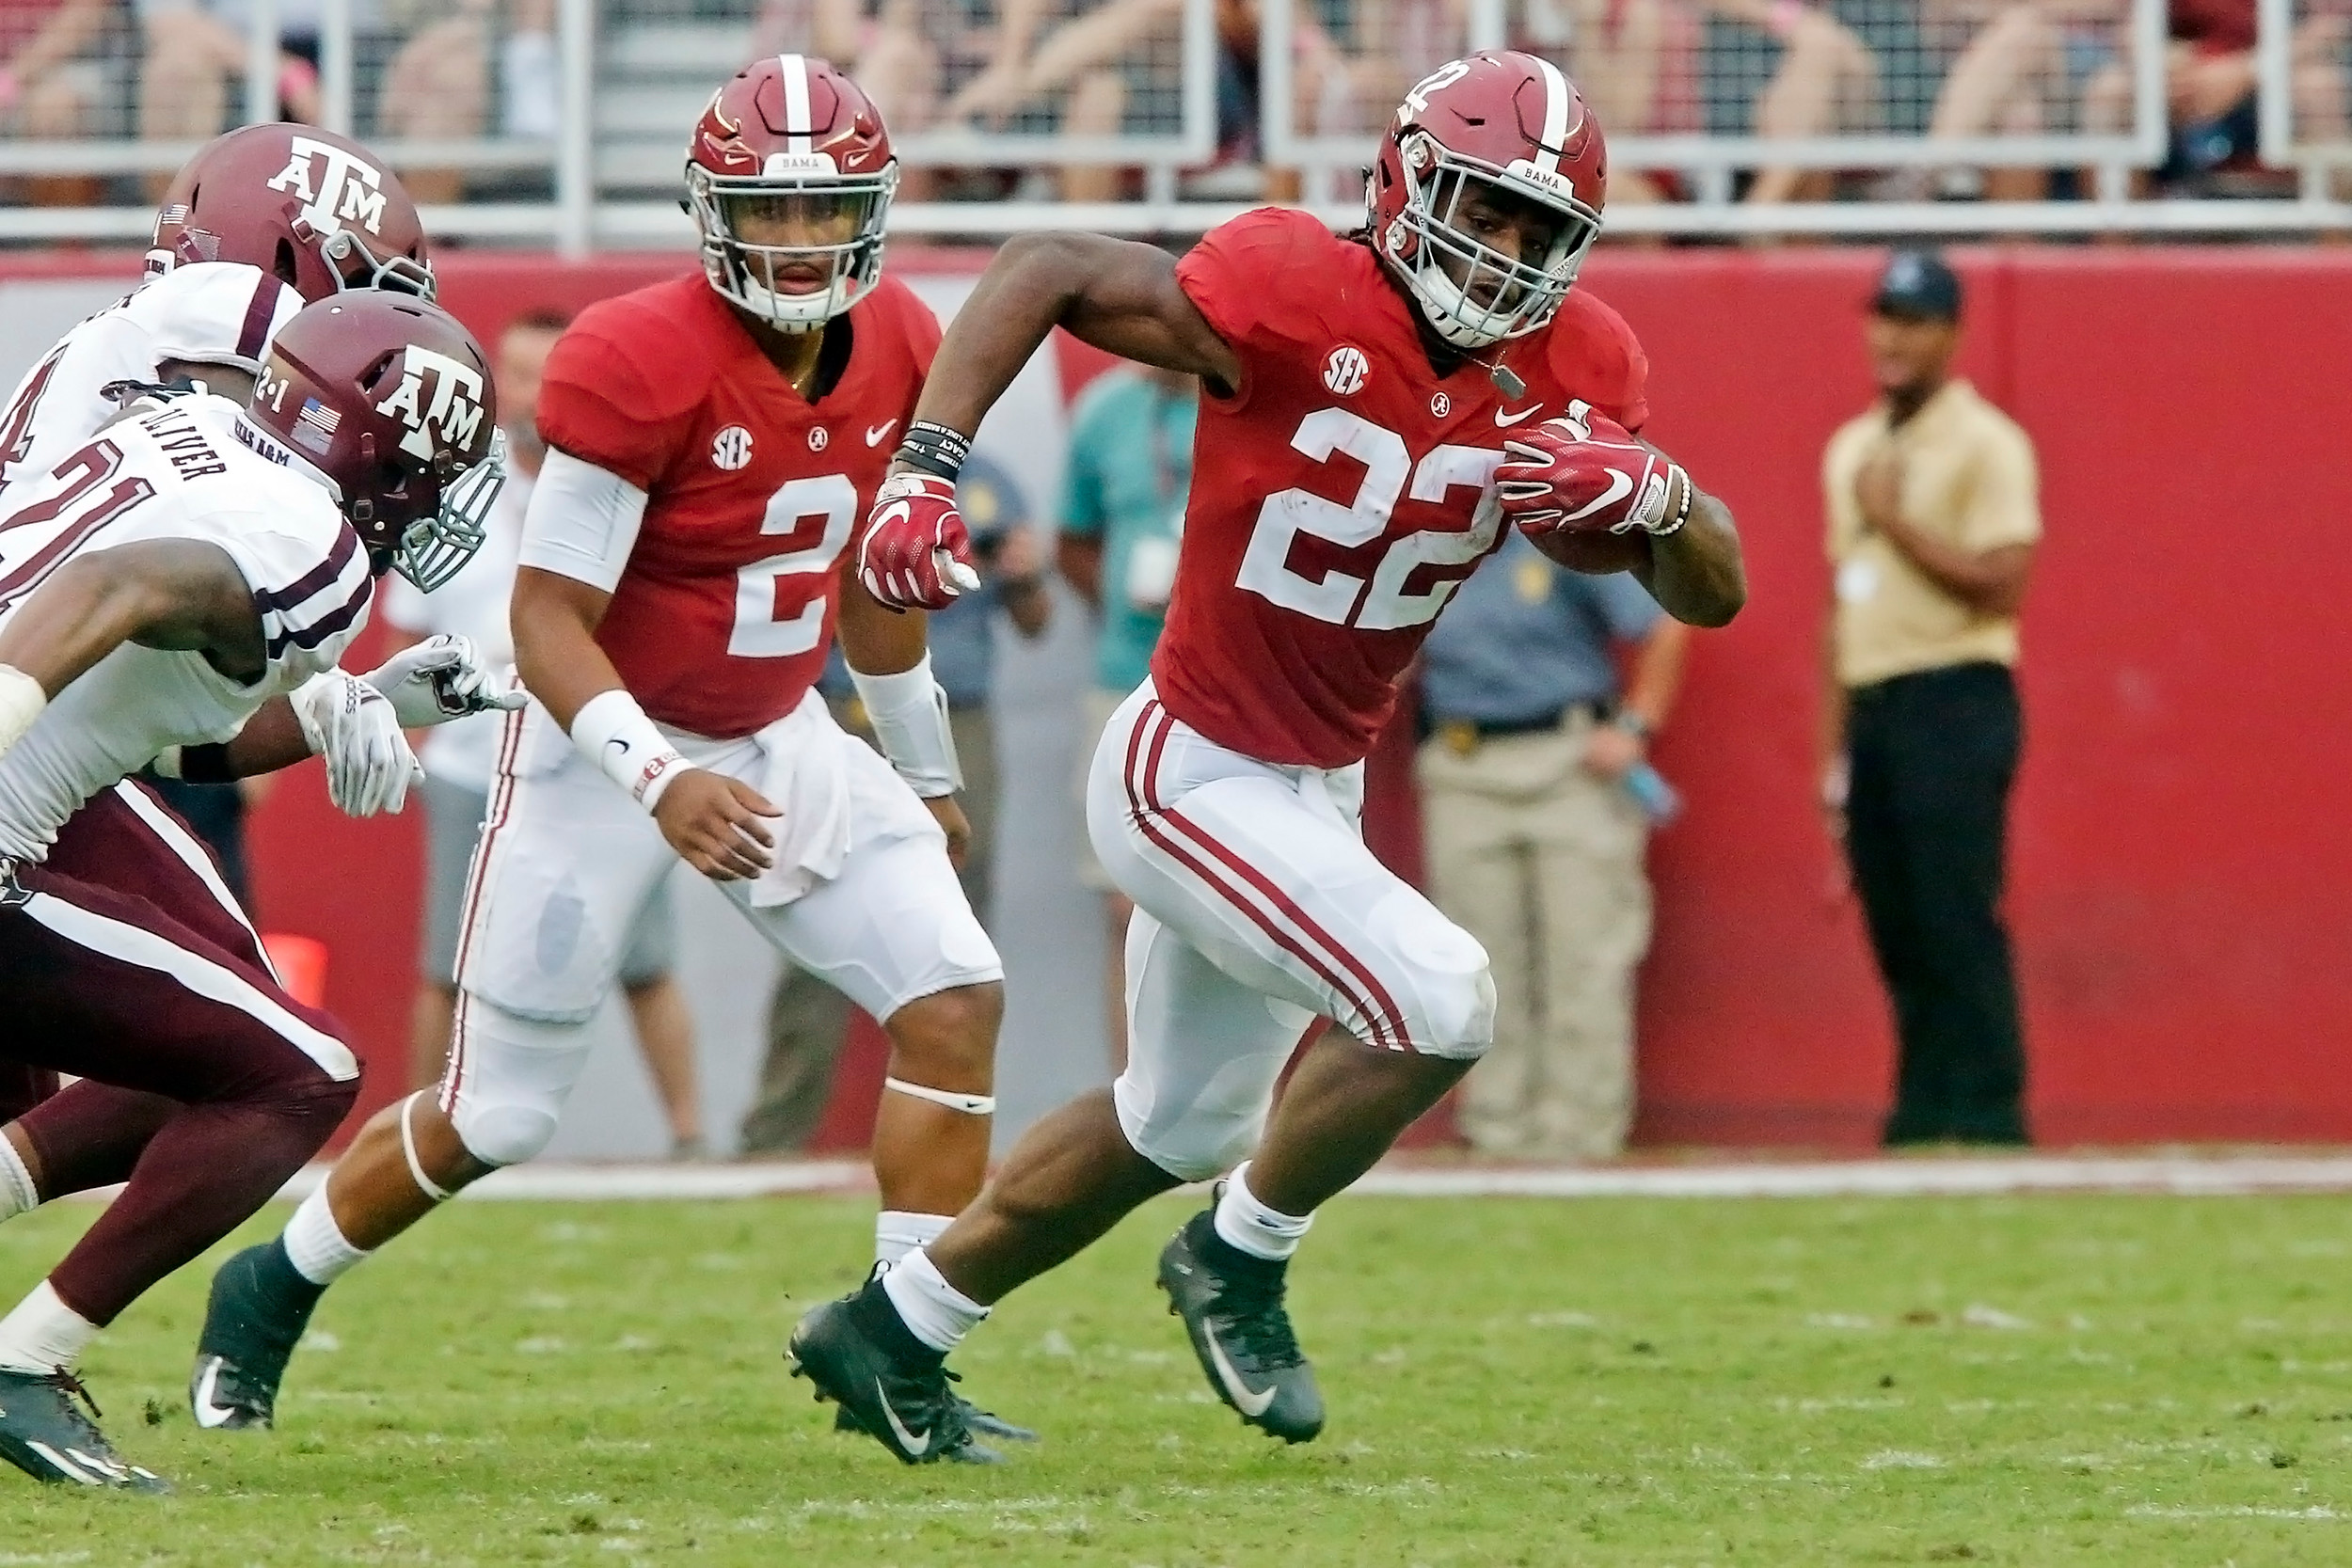 Alabama Crimson Tide running back Najee Harris (22) rushes for a first down during the game with against the Texas A&M Aggies at Bryant-Denny Stadium.  Jason Clark / Daily Mountain Eagle